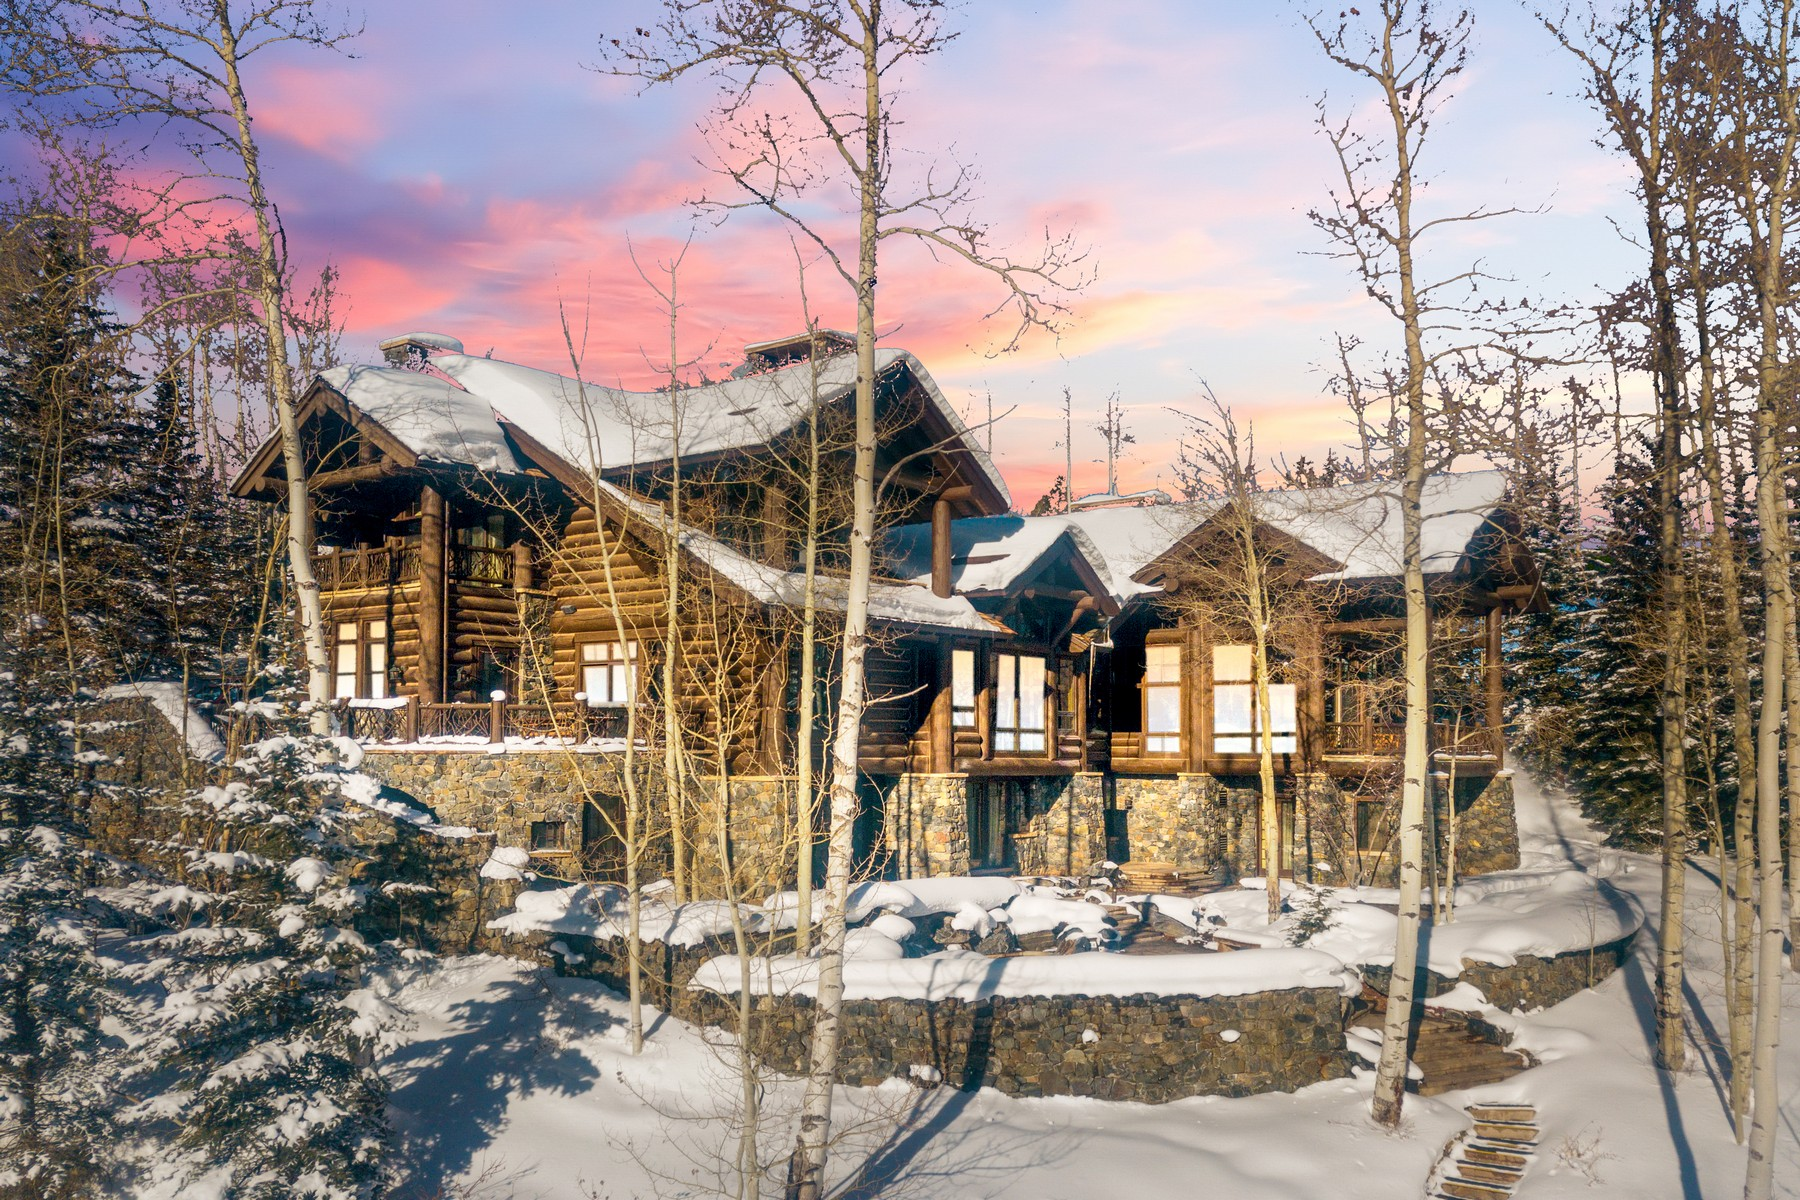 Single Family Homes for Sale at Great design comes from great passion 3483 Daybreak Ridge Beaver Creek, Colorado 81620 United States